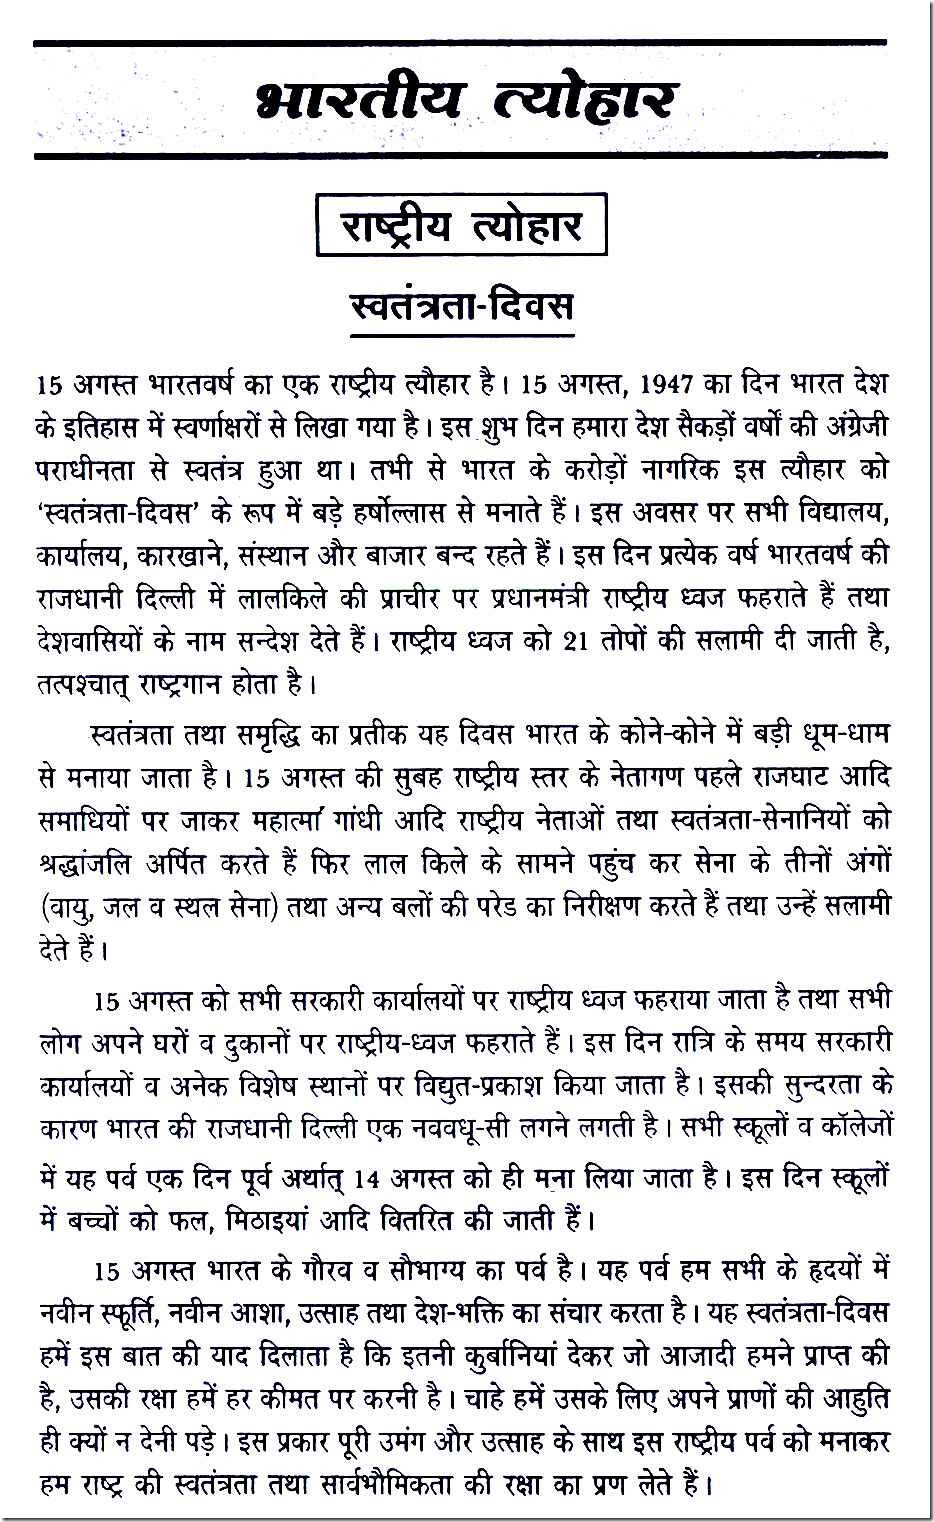 An essay on 15 august in hindi